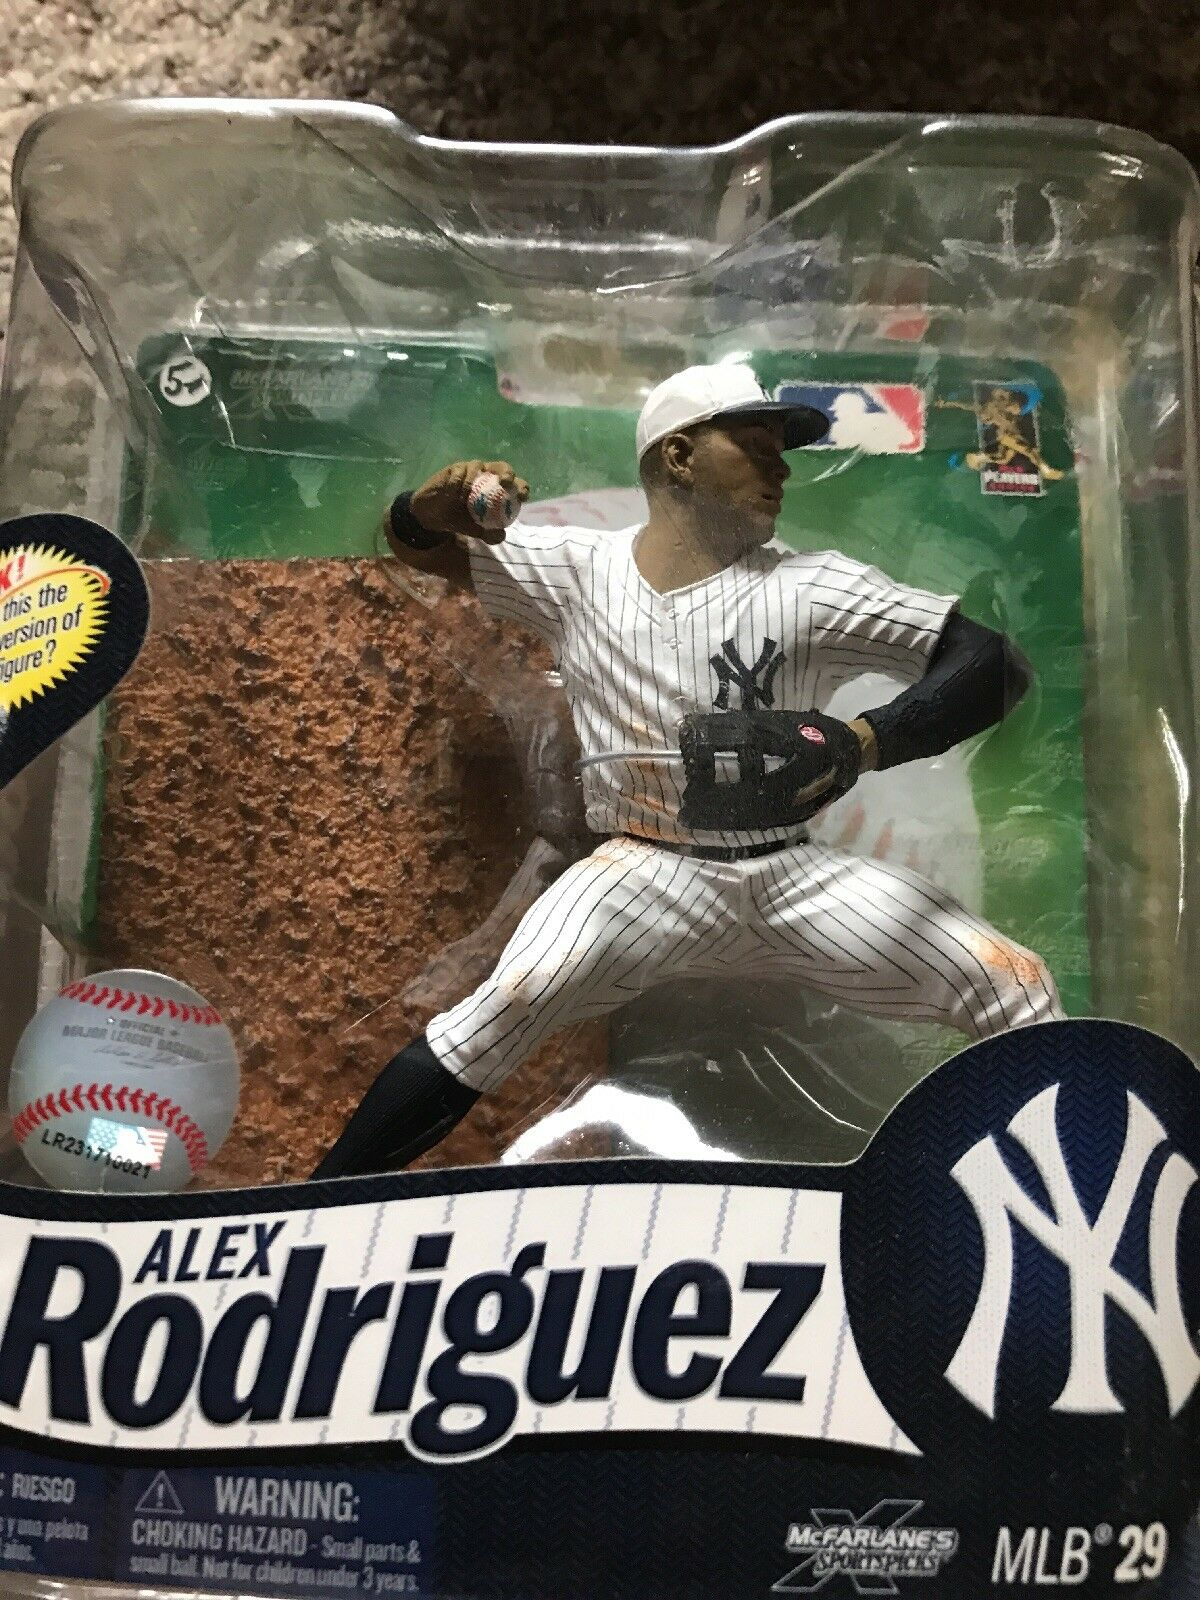 Mcfarlane ALEX RODRIGUEZ Chase Variant July 4th 4th 4th Yankees Hat Plus other figure 1f228c